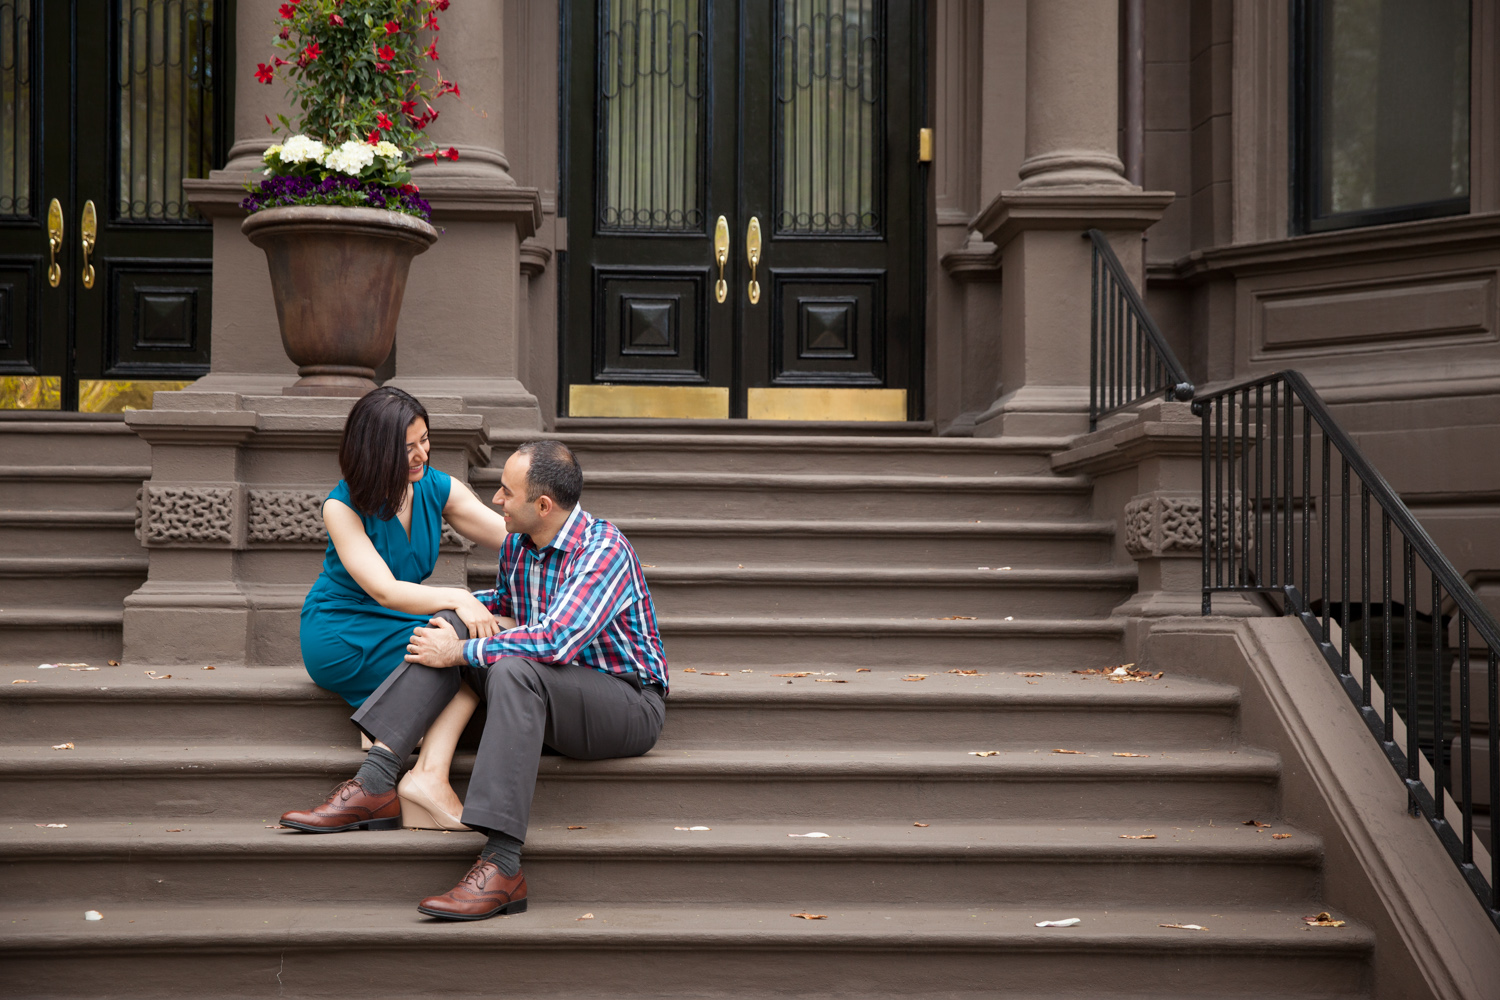 couple-sitting-on-brownstone-stairs-commonwealth-avenue-boston-back-bay.jpg